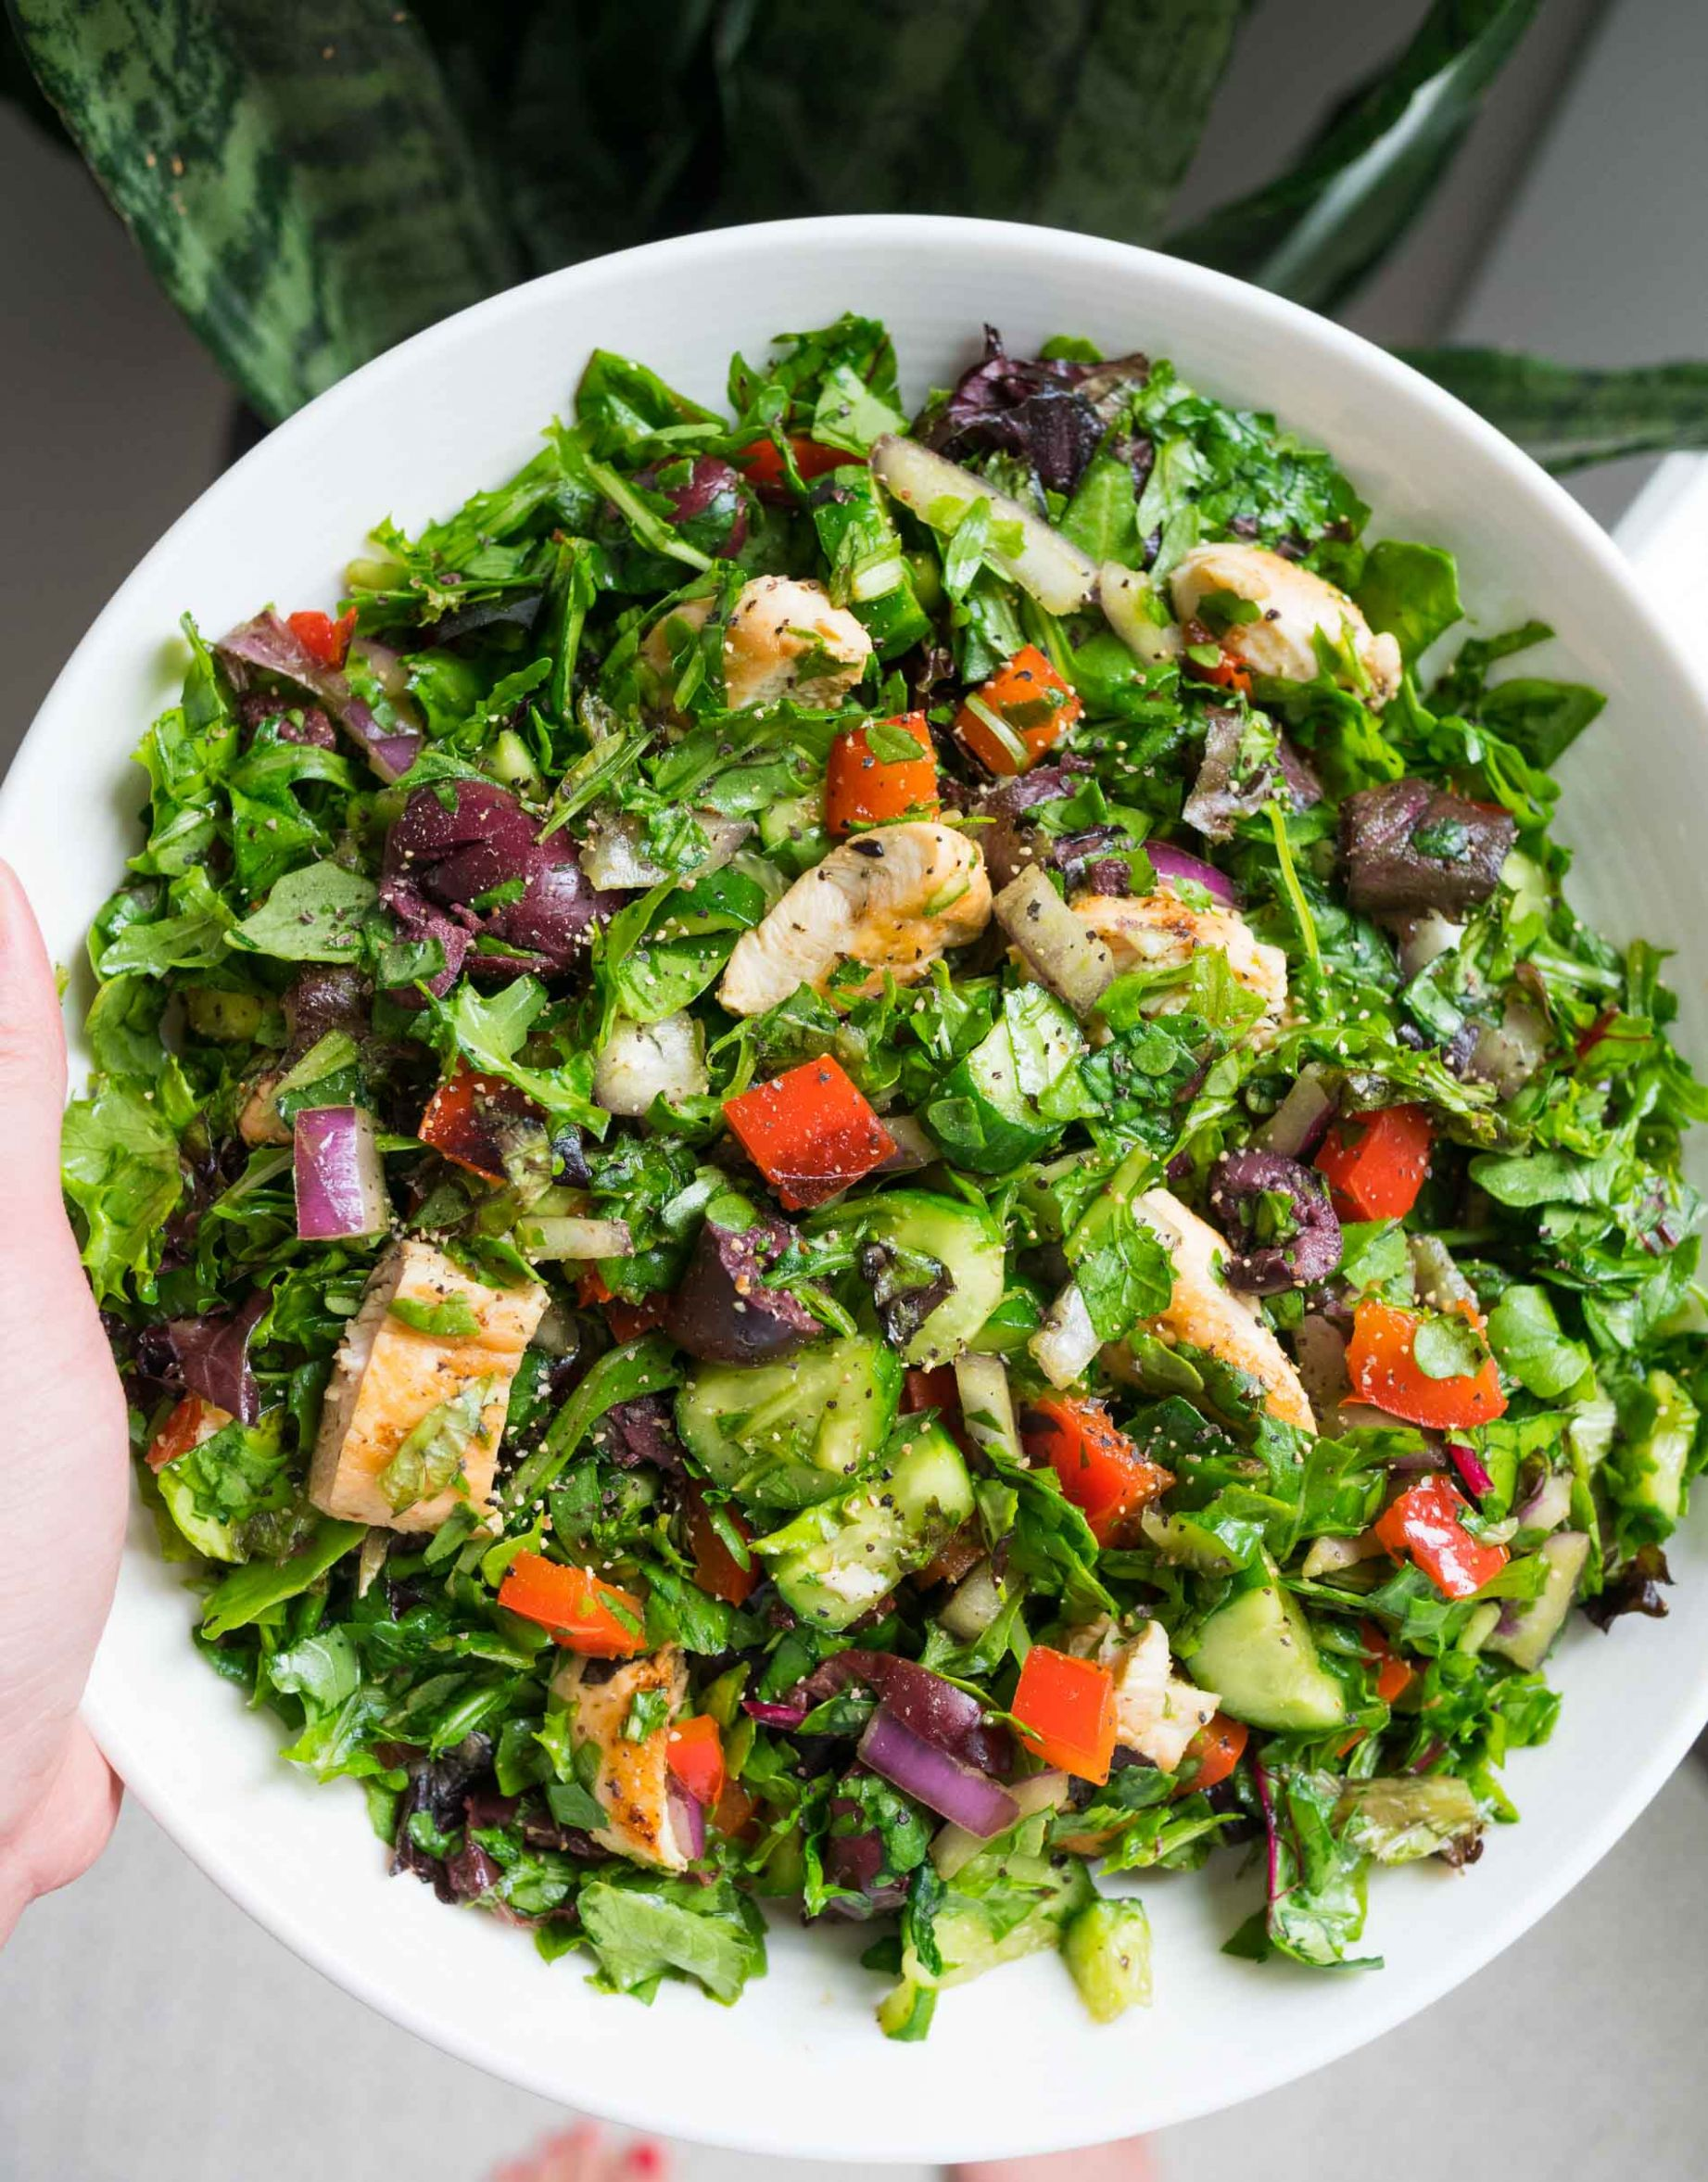 Quick Basic Chopped Salad - Easy Salad Recipe with Lots of Flavor